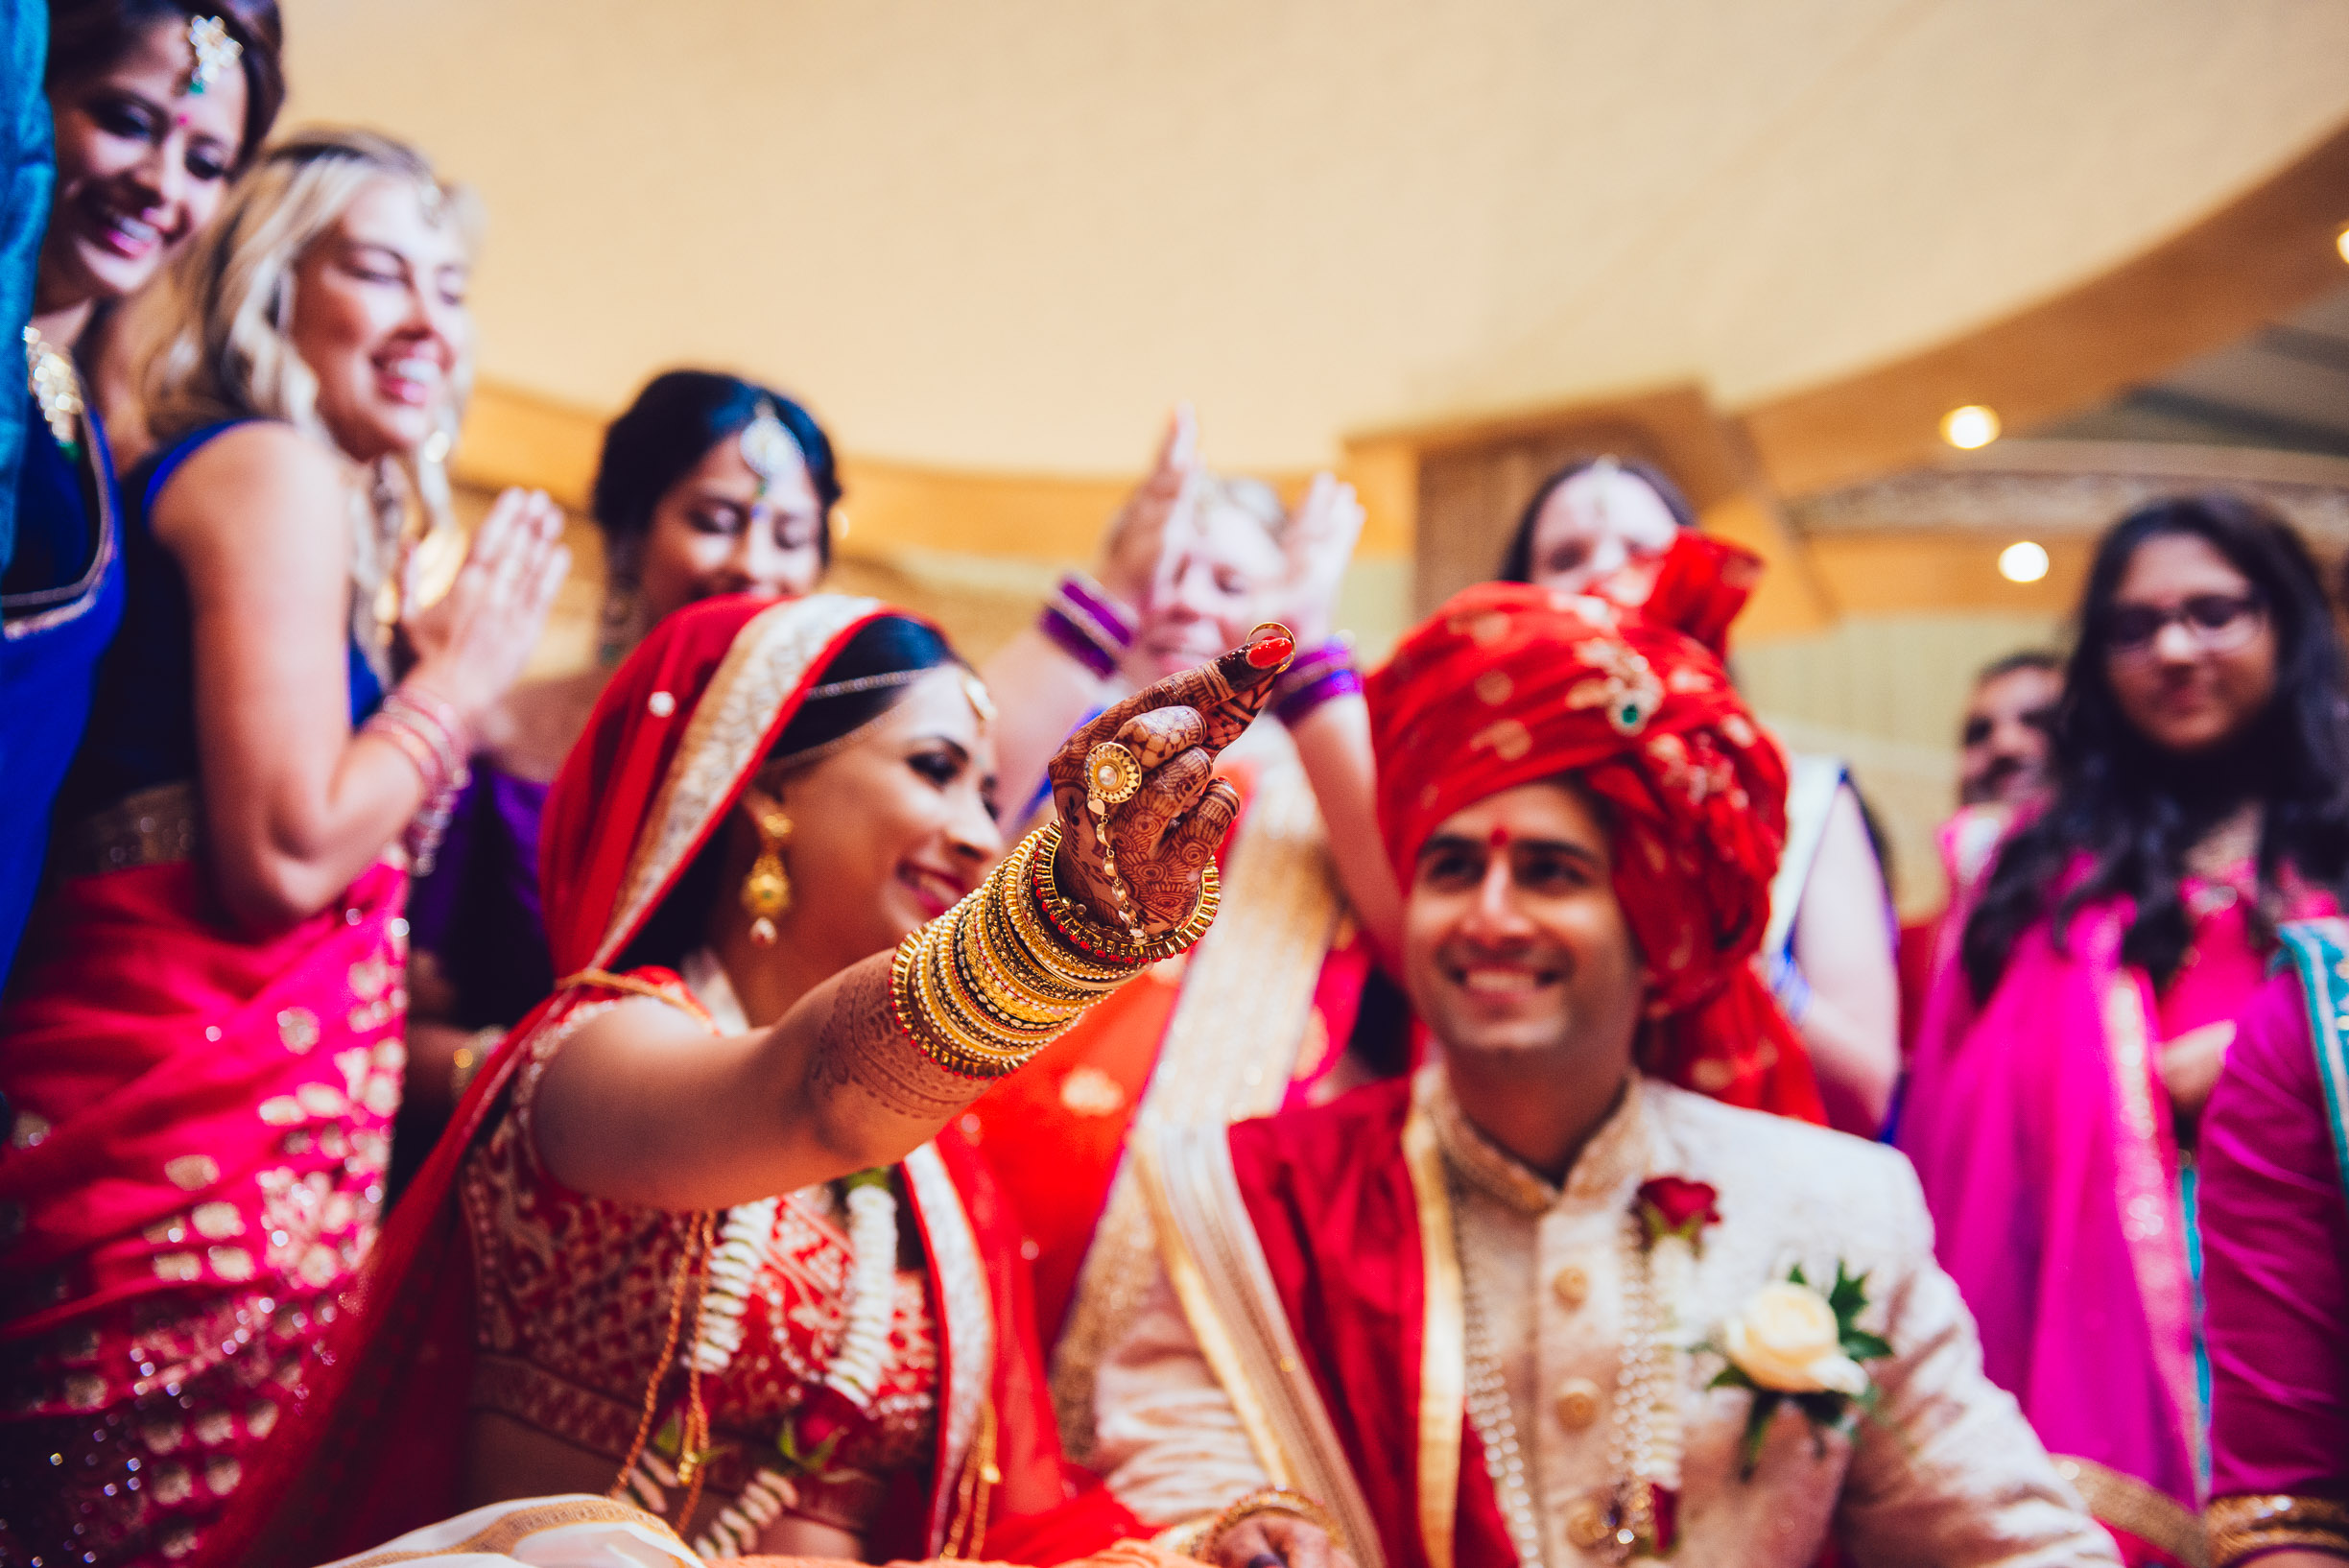 amit&ceema_eden_moments_wedding_photography-19